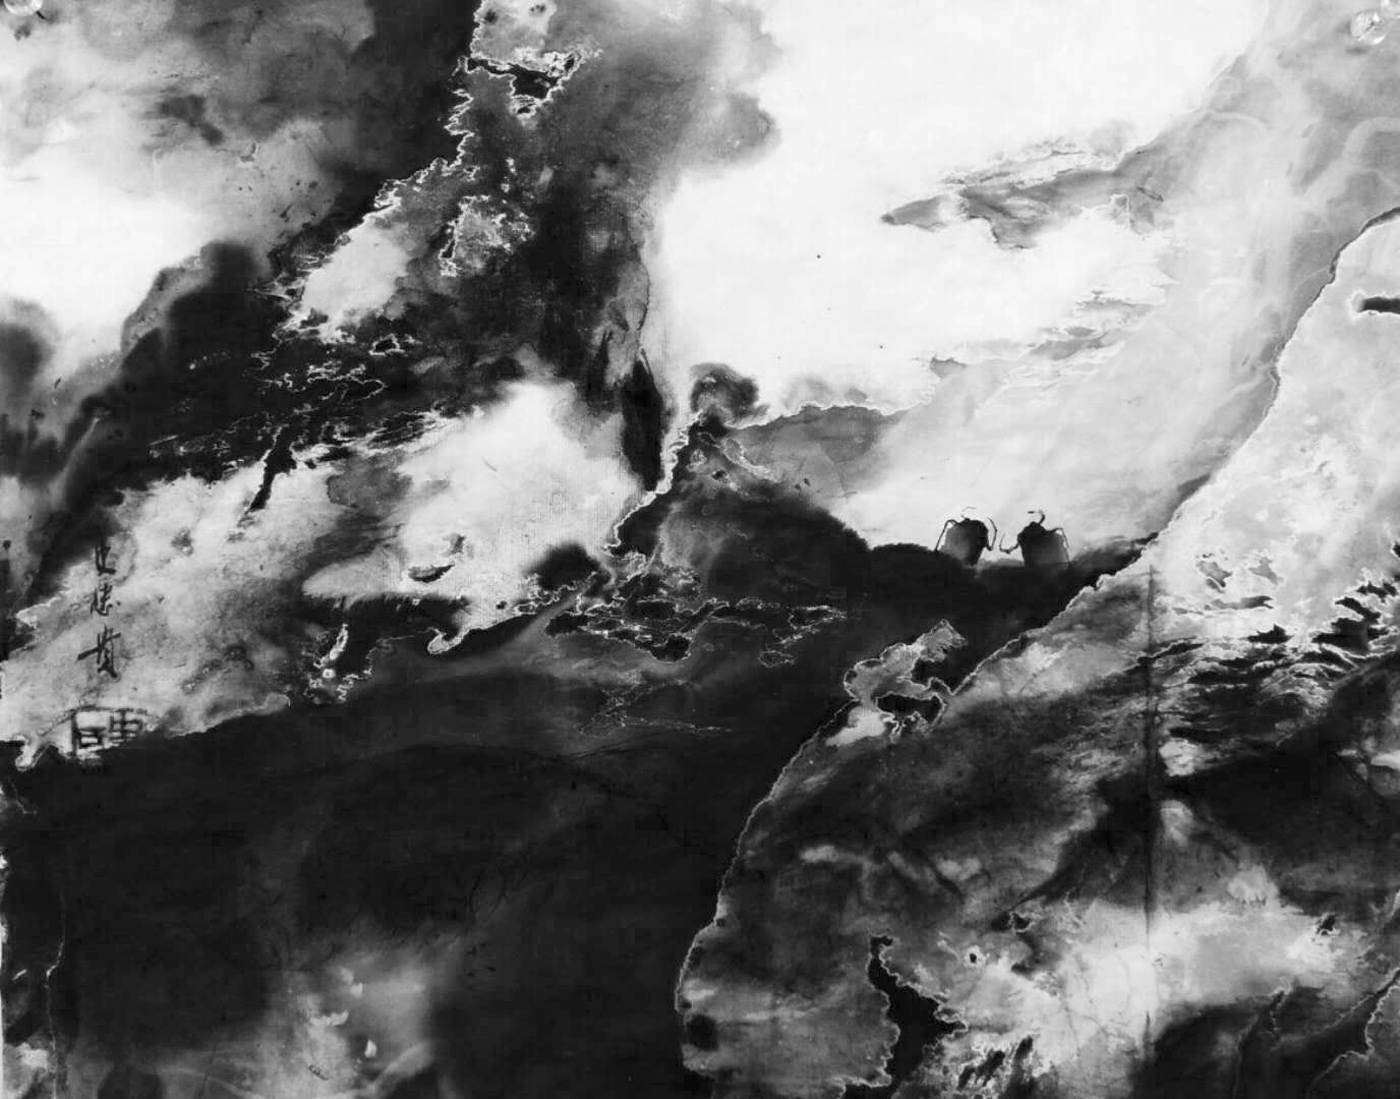 Shi Zhong Gui - Art Works - Chinese Paintings - Black and White